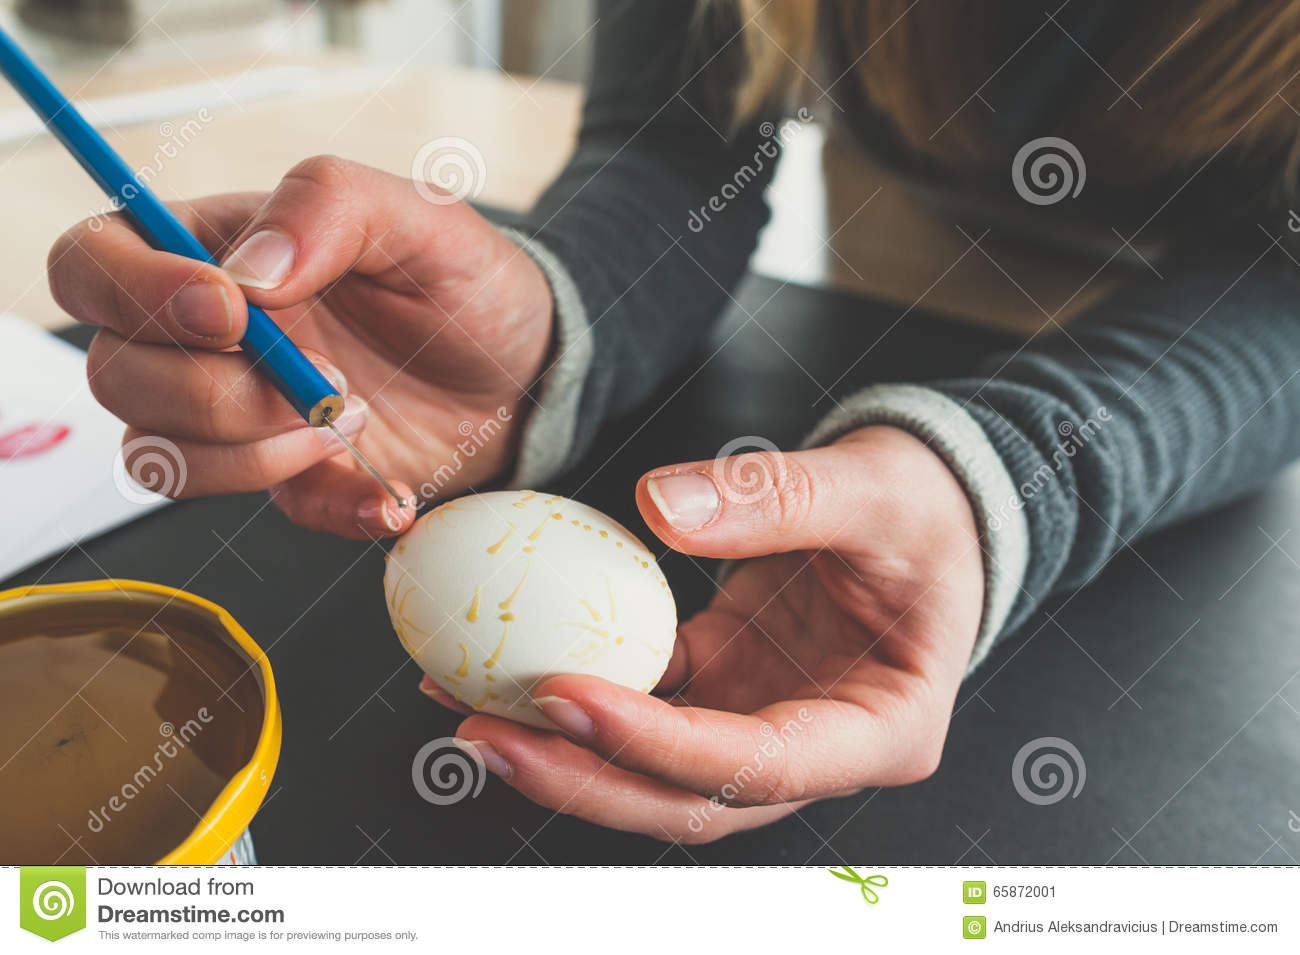 Decorating an Easter egg